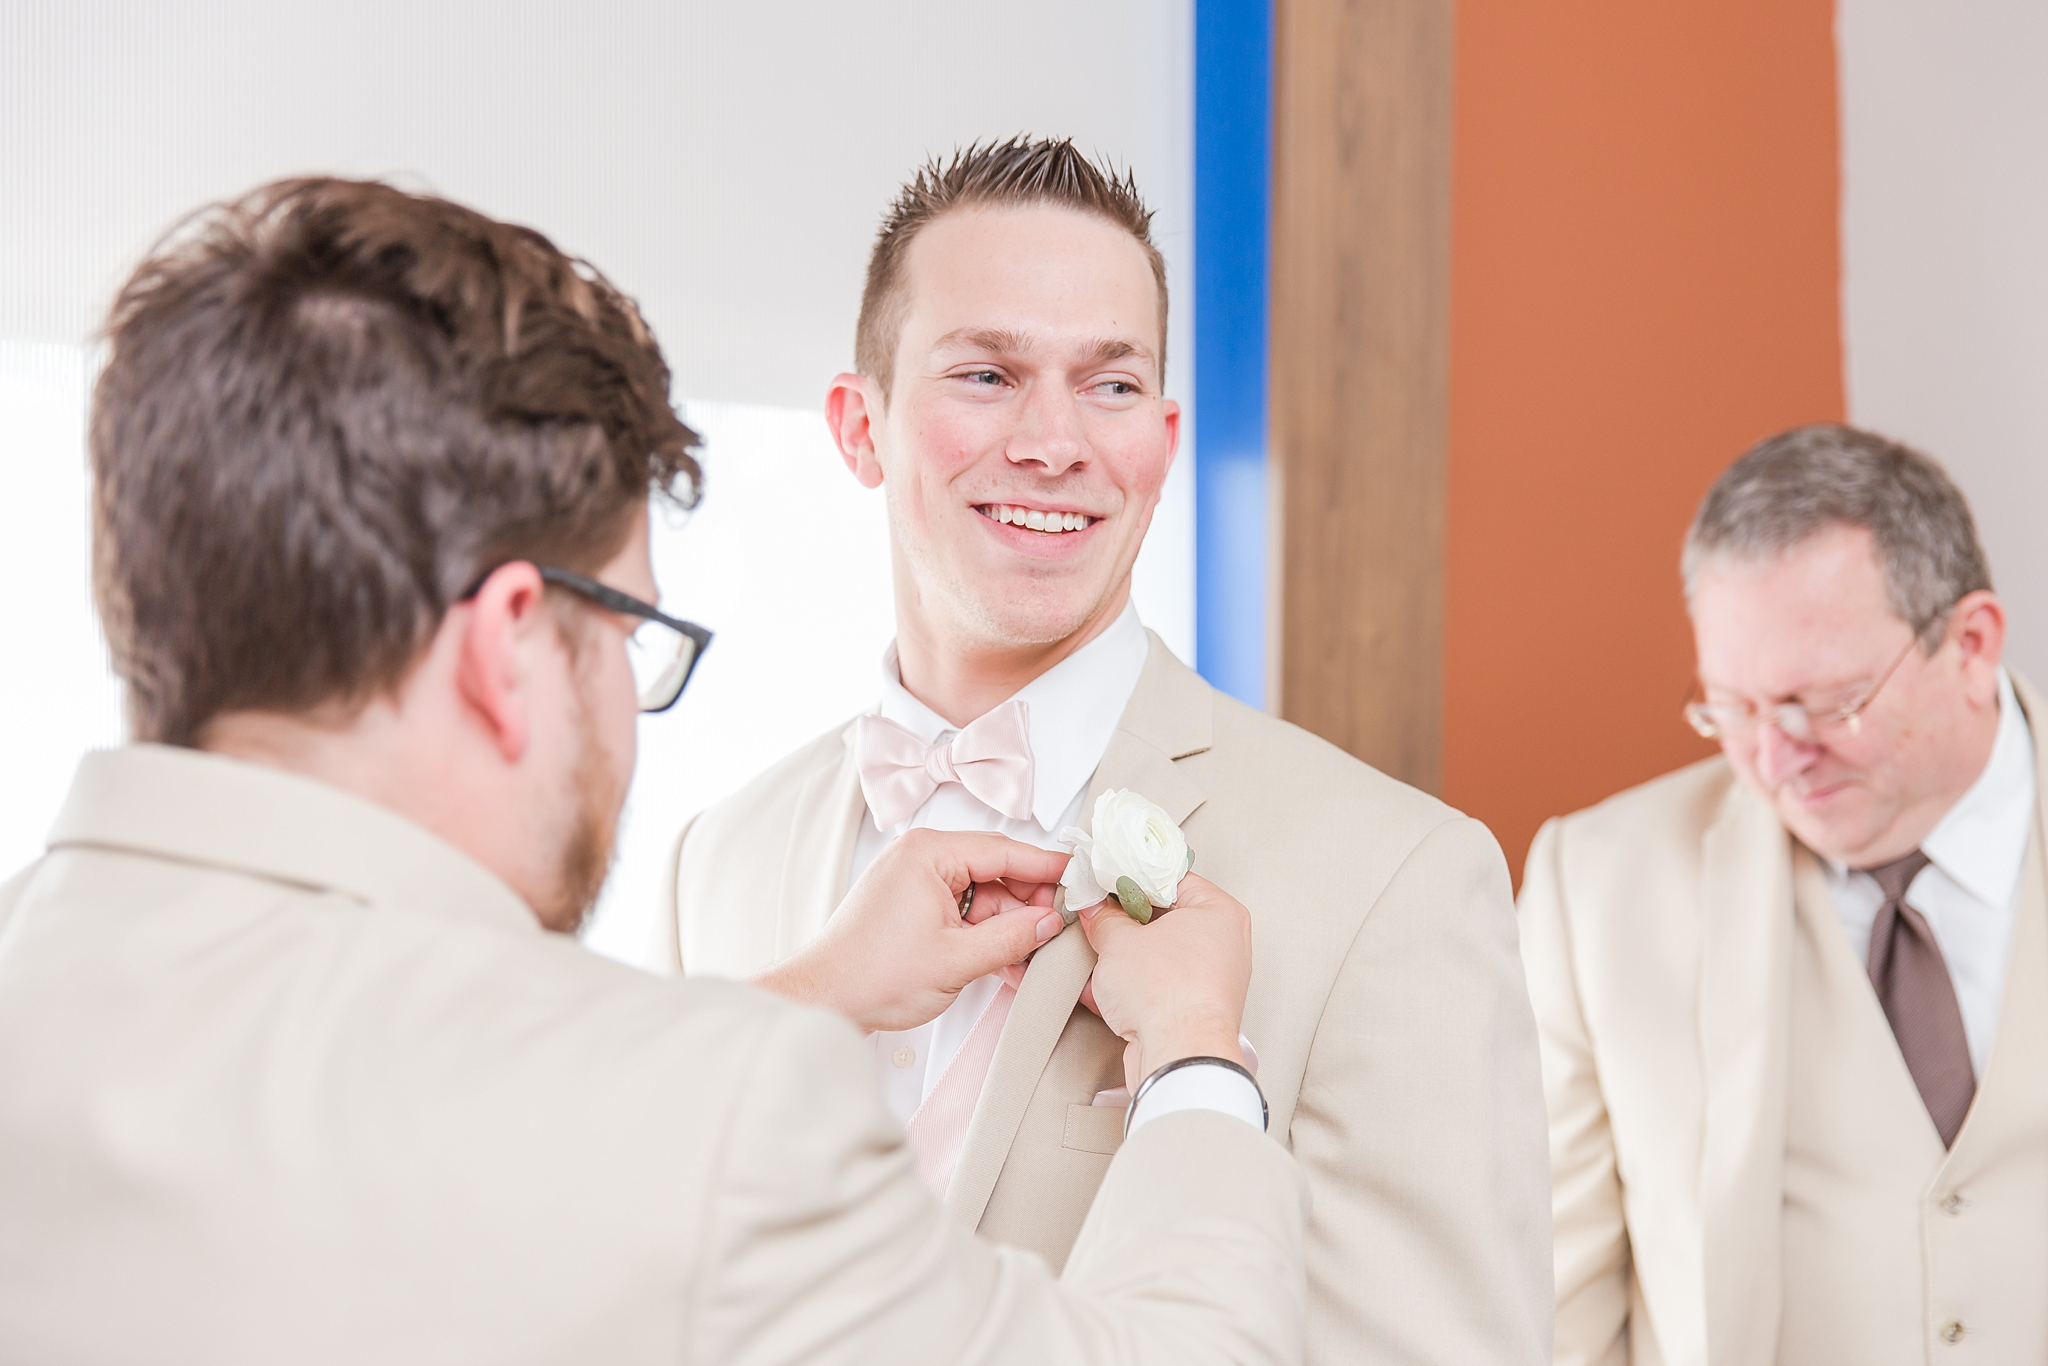 candid-timeless-wedding-photos-at-the-captains-club-in-grand-blanc-michigan-by-courtney-carolyn-photography_0012.jpg